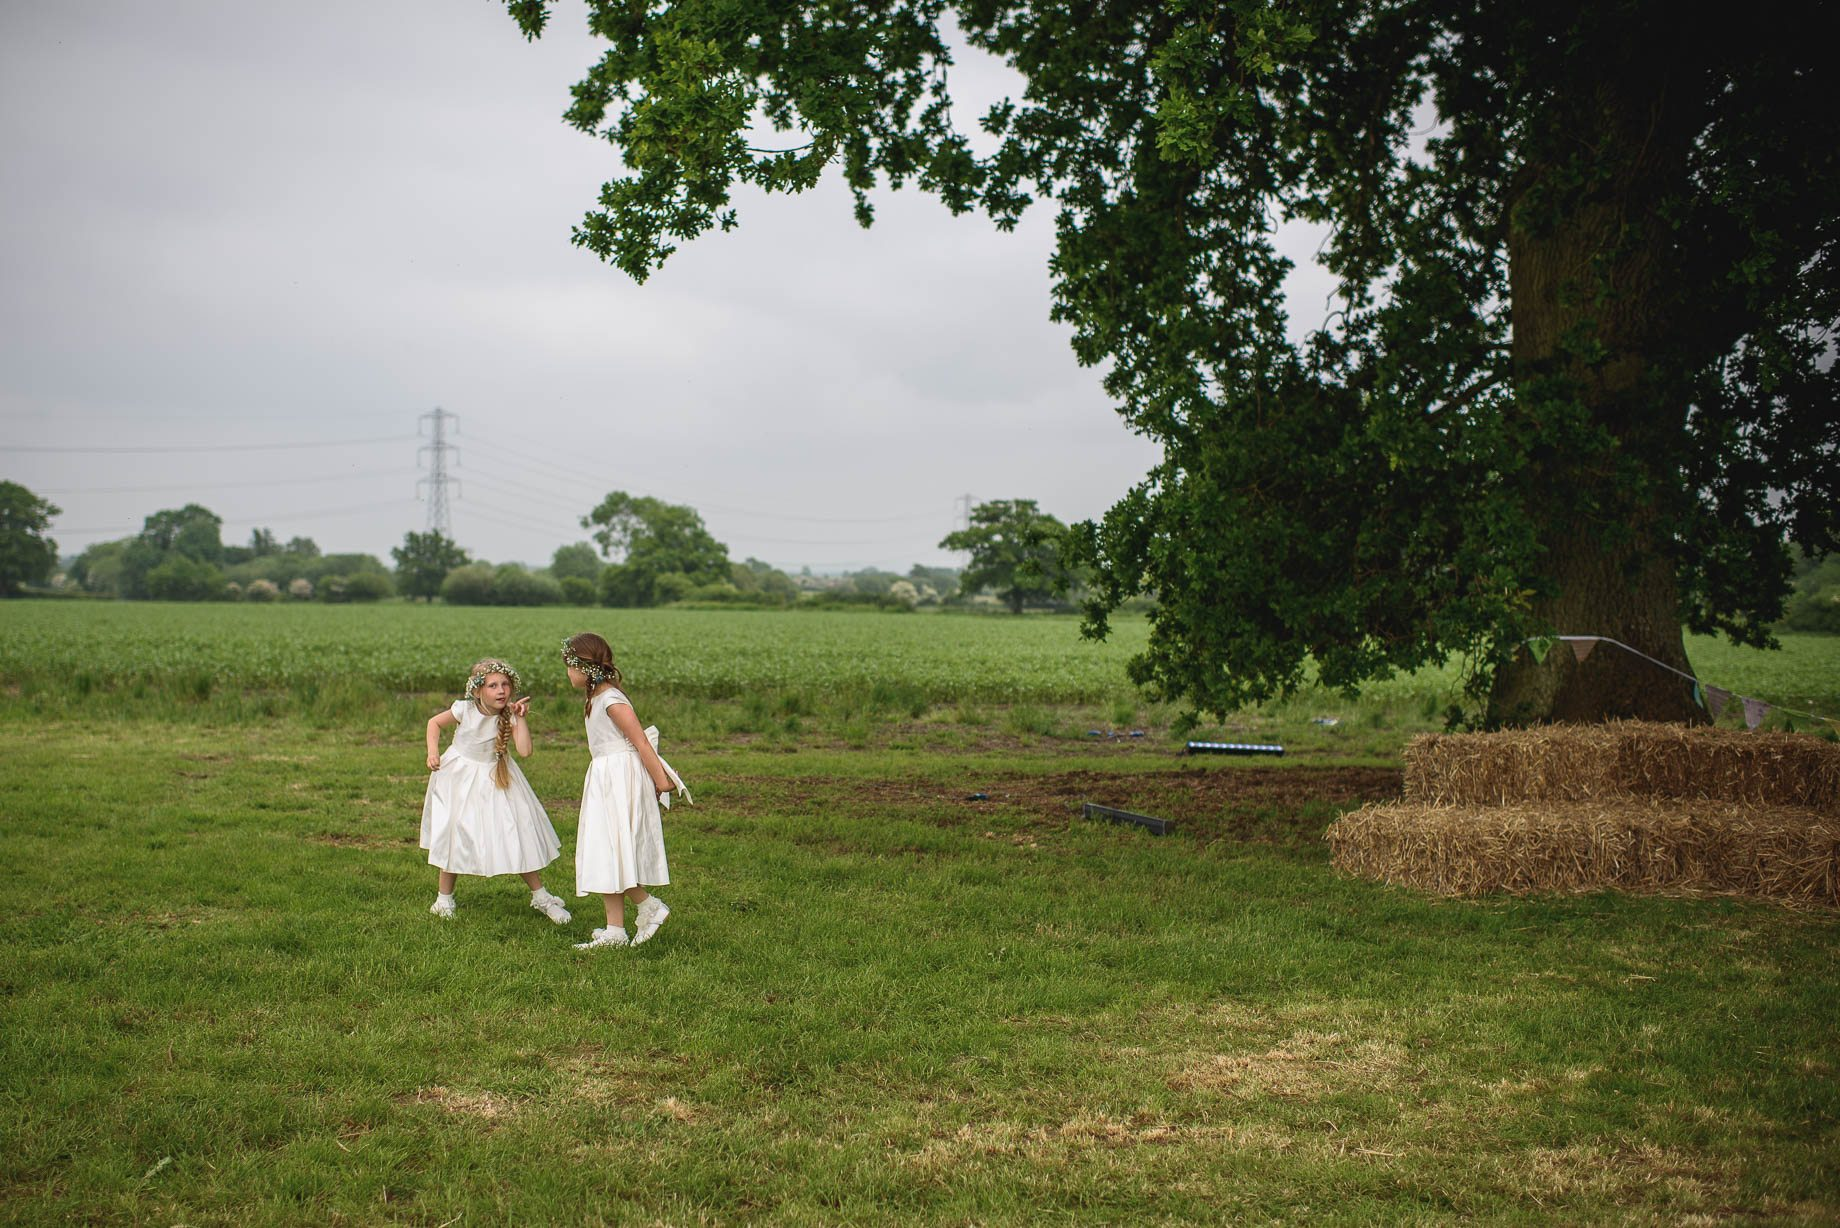 Wiltshire wedding photography by Guy Collier - Lucie and Matt (119 of 198)